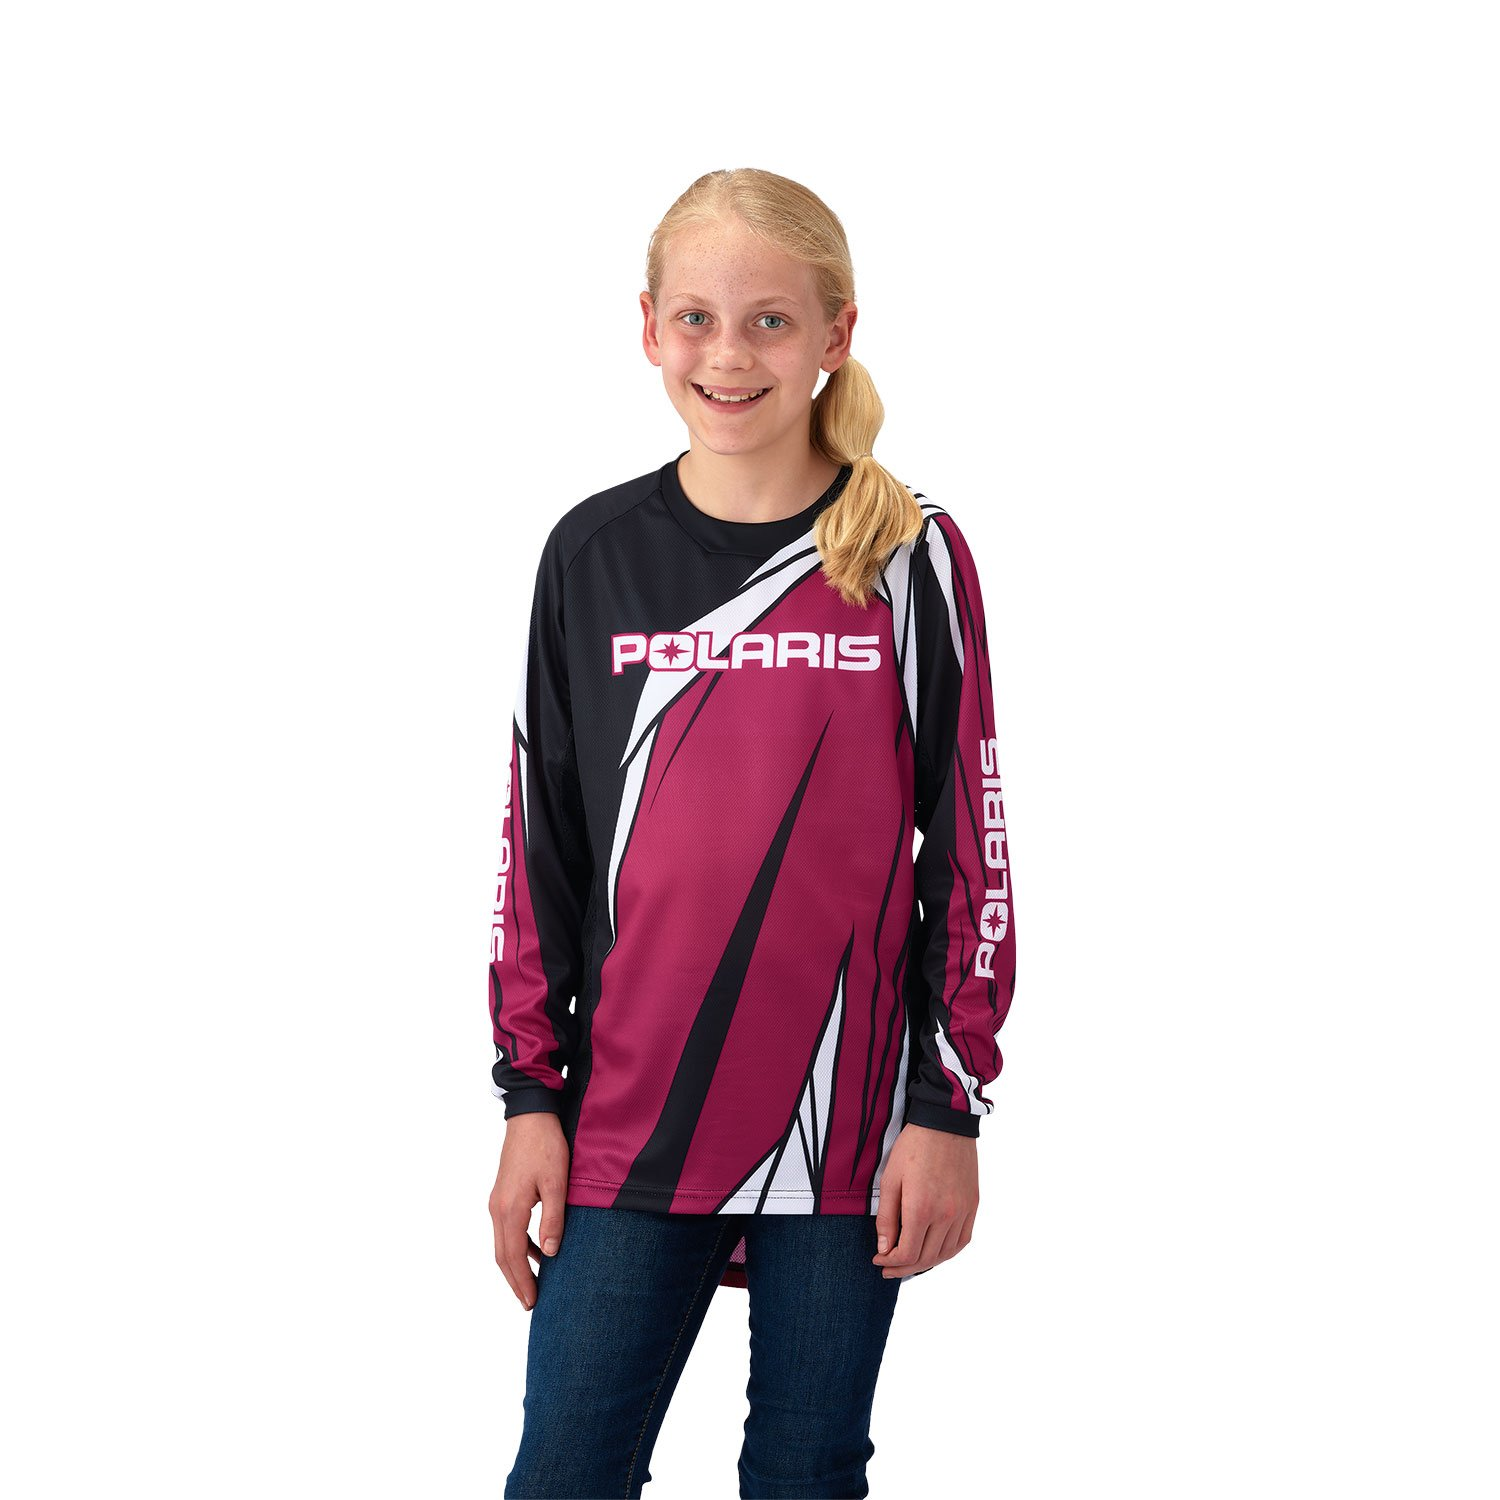 Polaris Youth Off-Road Riding Jersey - Pink - Medium (Size 10-12)